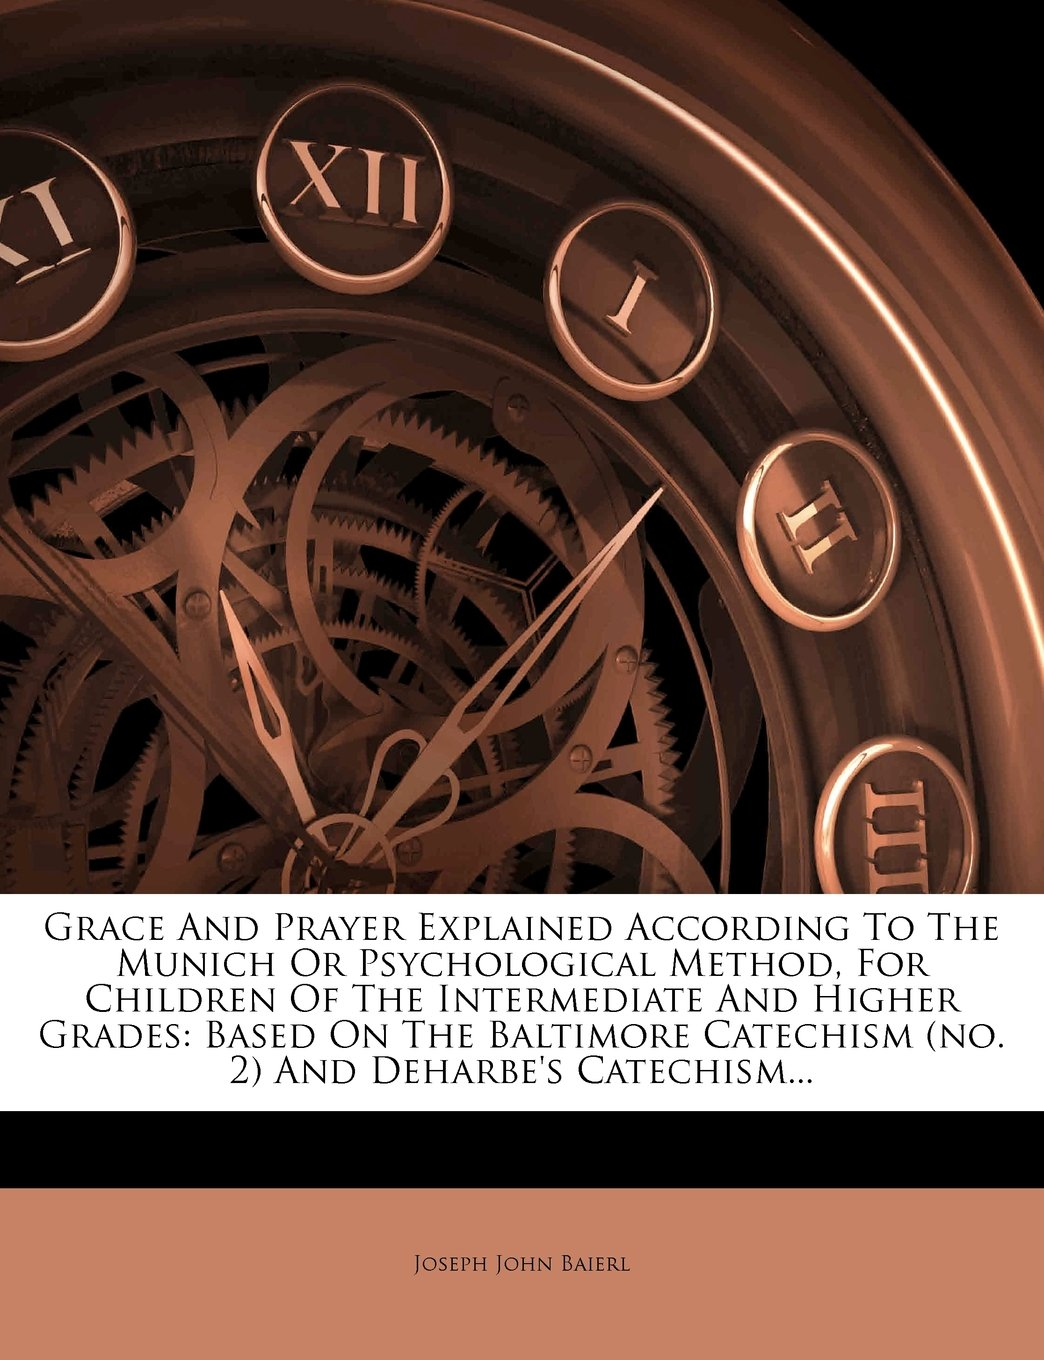 Grace And Prayer Explained According To The Munich Or Psychological Method, For Children Of The Intermediate And Higher Grades: Based On The Baltimore Catechism (no. 2) And Deharbe's Catechism... pdf